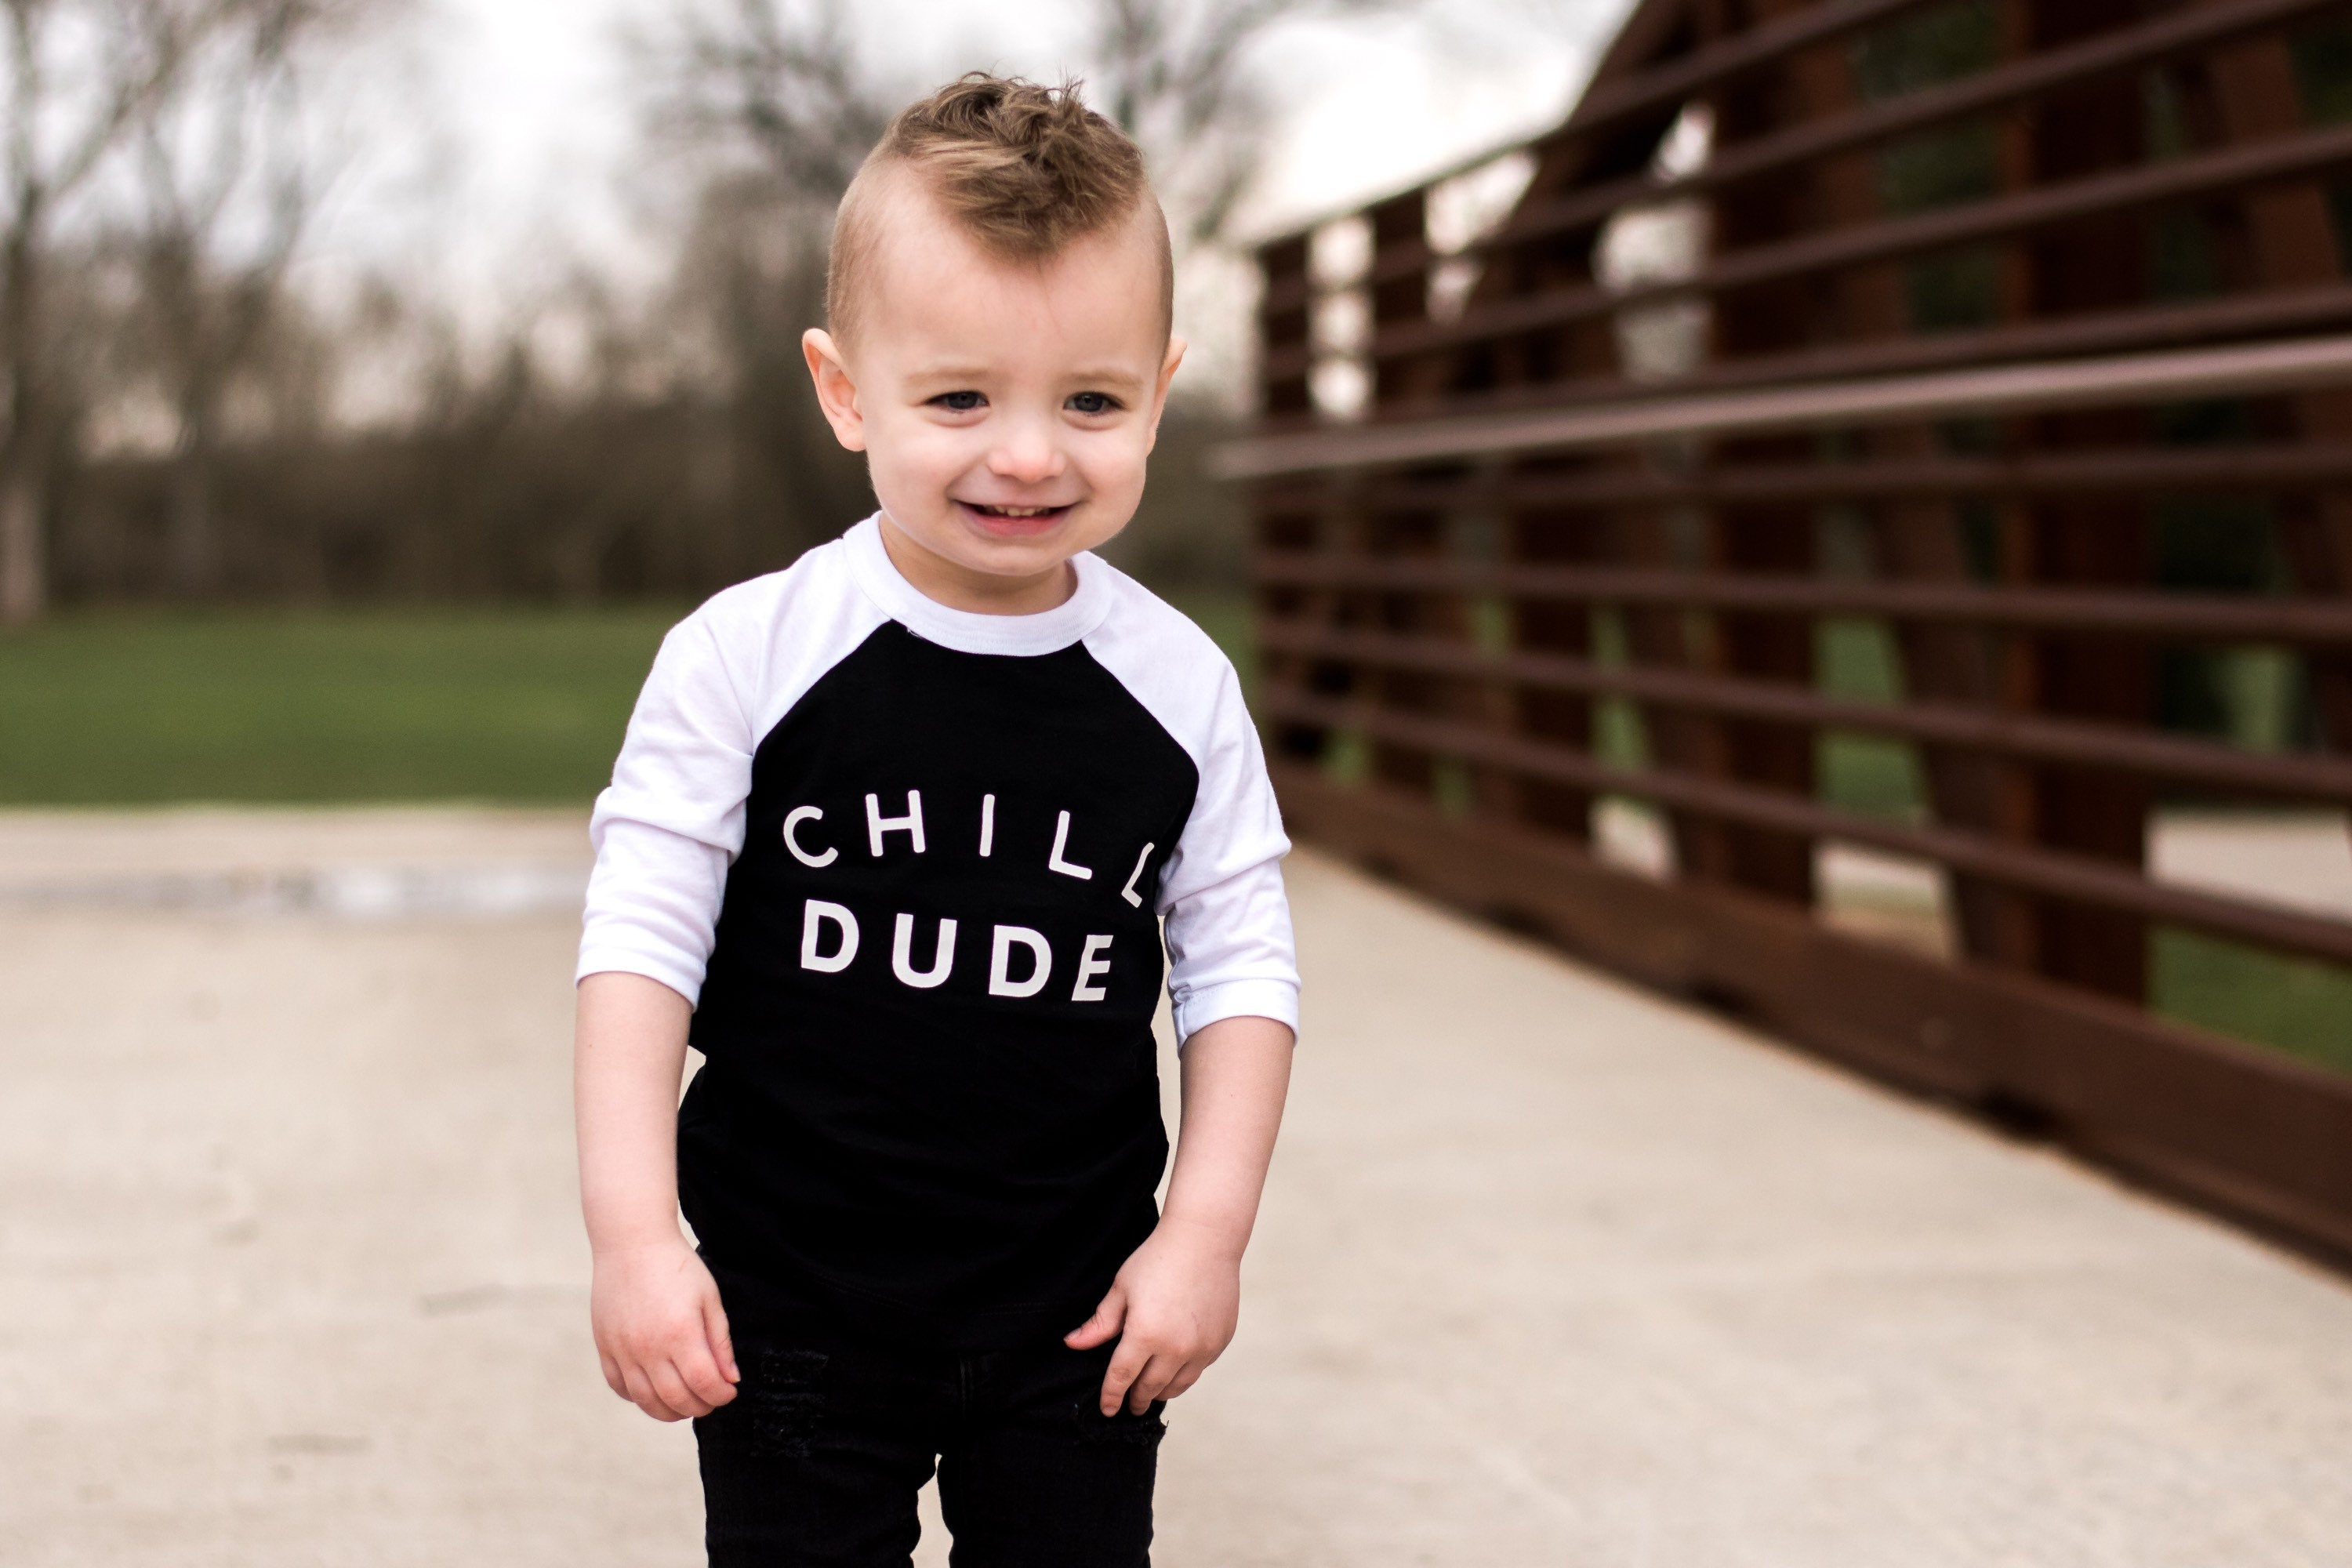 Chill Dude Kids Raglan Tee